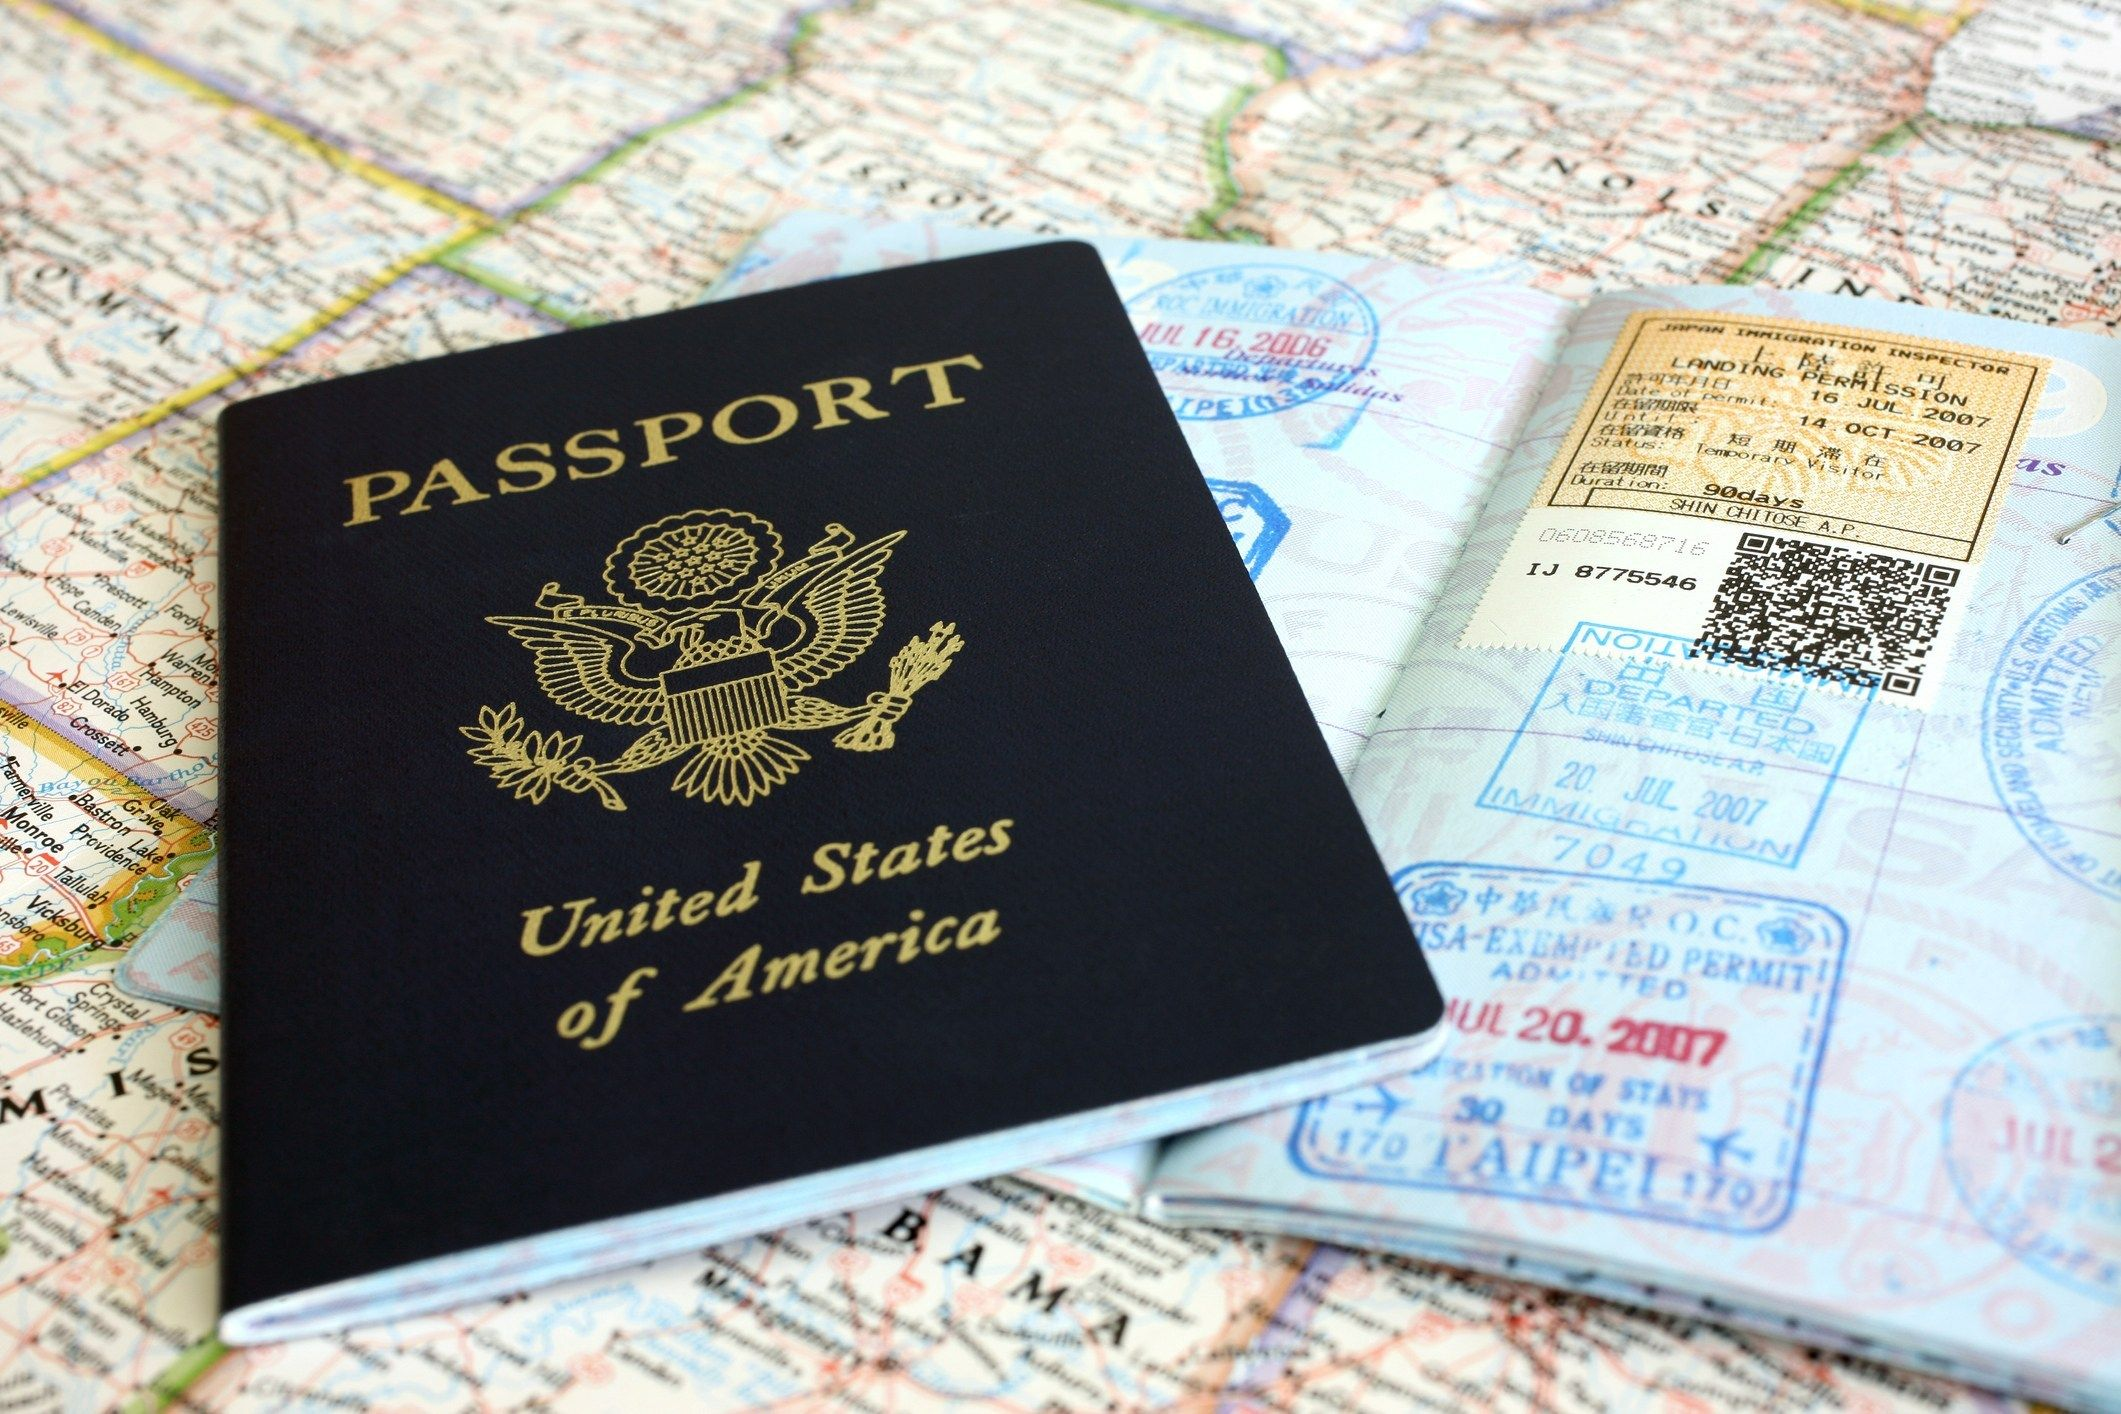 acca131631b17c9c212f0d06d79830a1 - Global Entry Application New York City